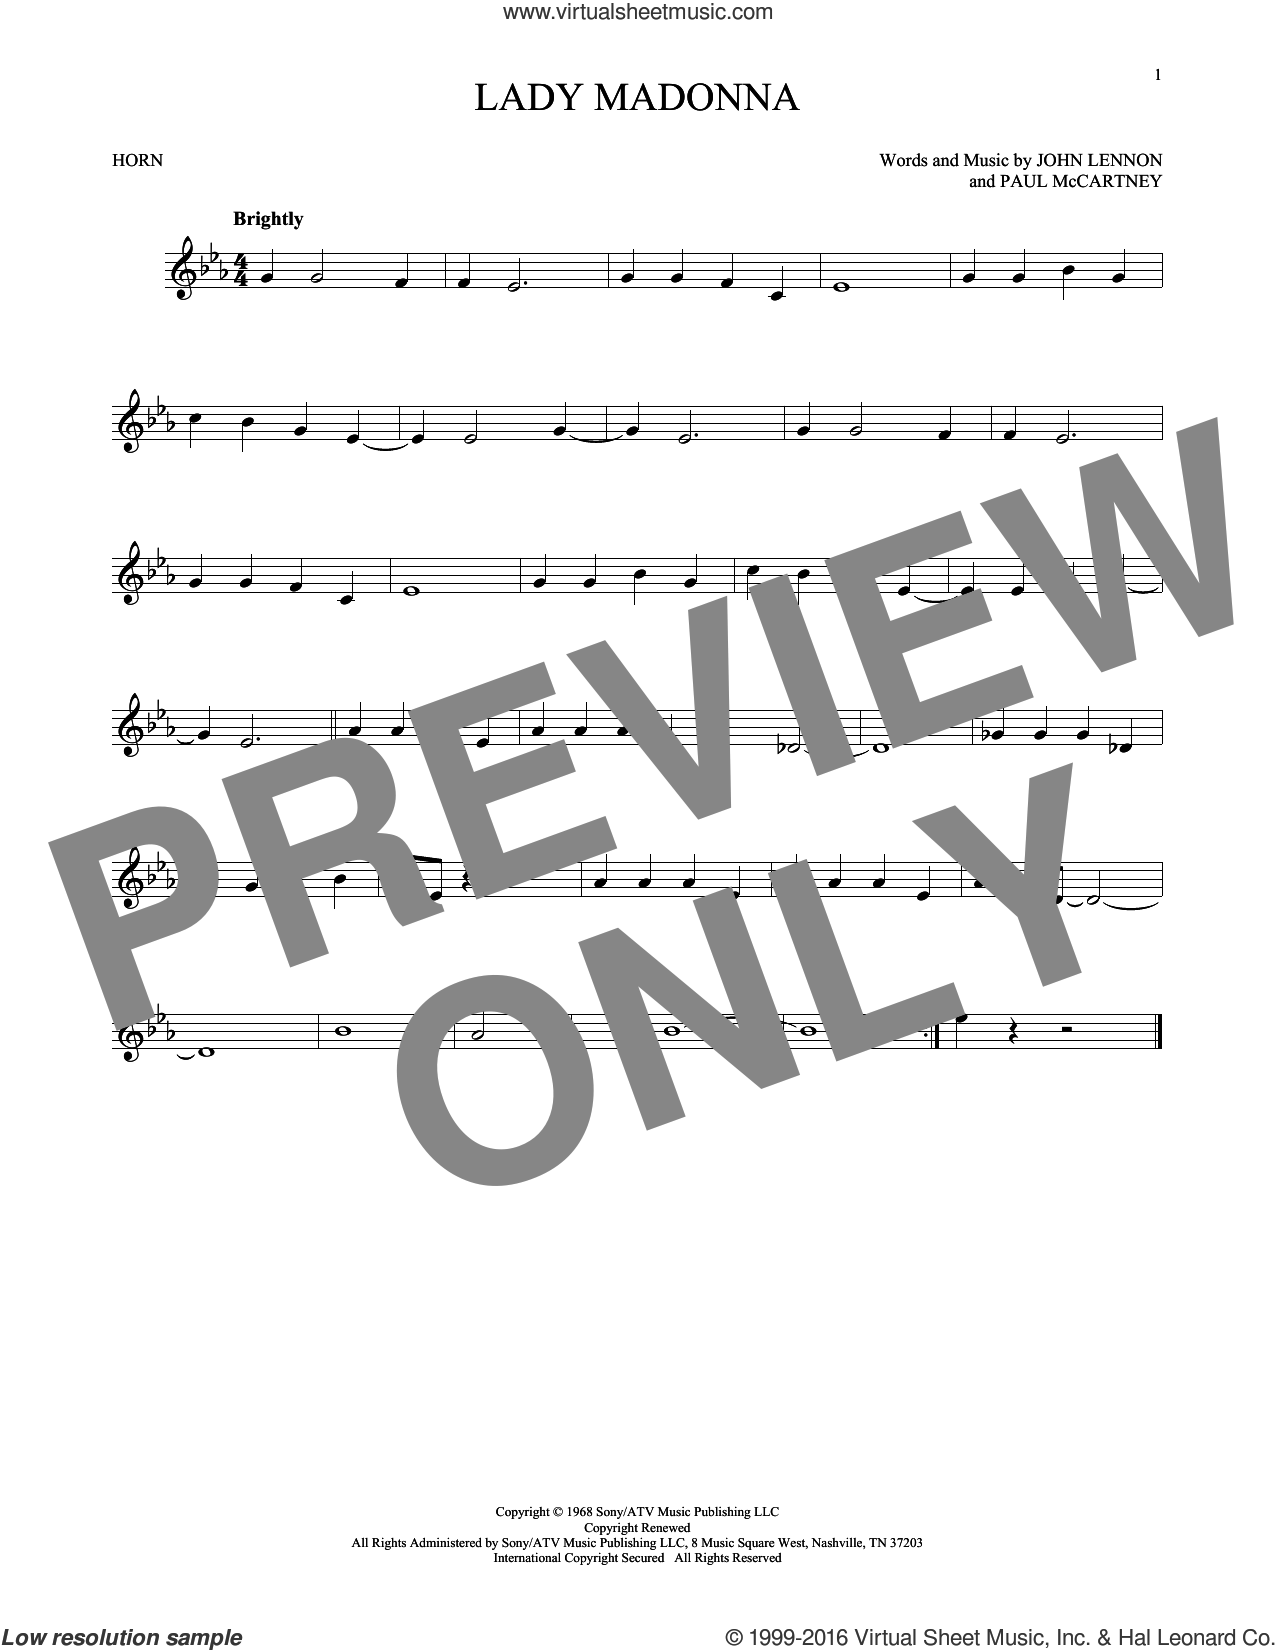 Lady Madonna sheet music for horn solo by The Beatles, John Lennon and Paul McCartney, intermediate skill level